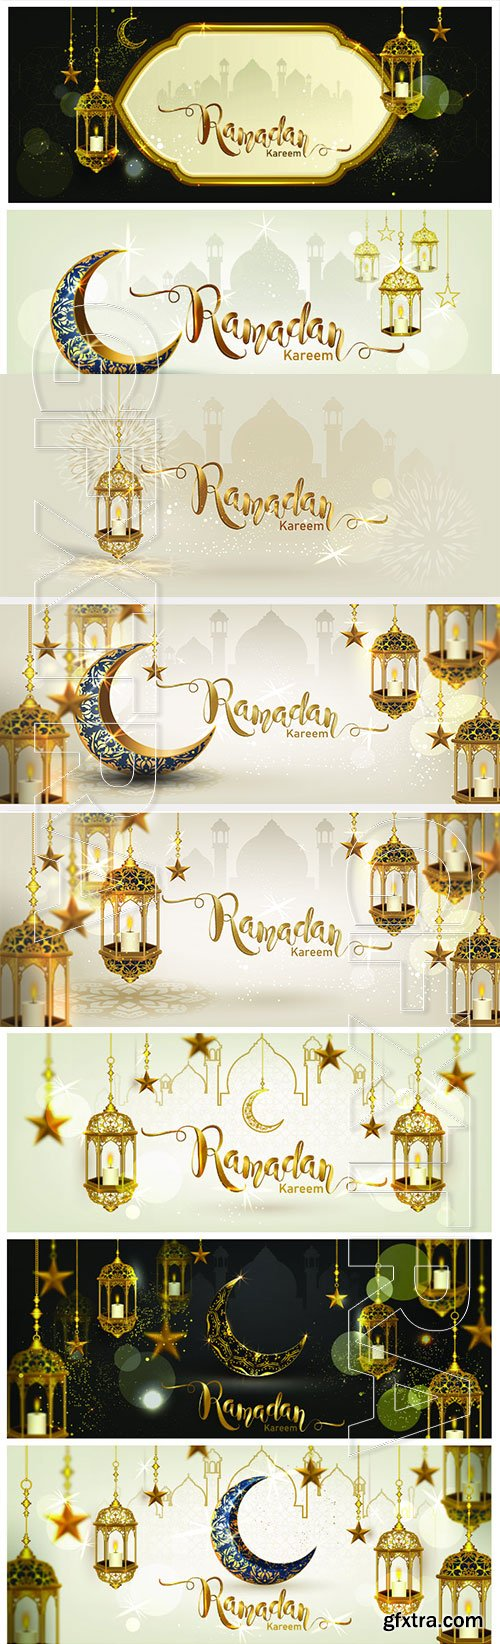 Ramadan Kareem with gold luxurious crescent,  islamic ornate element